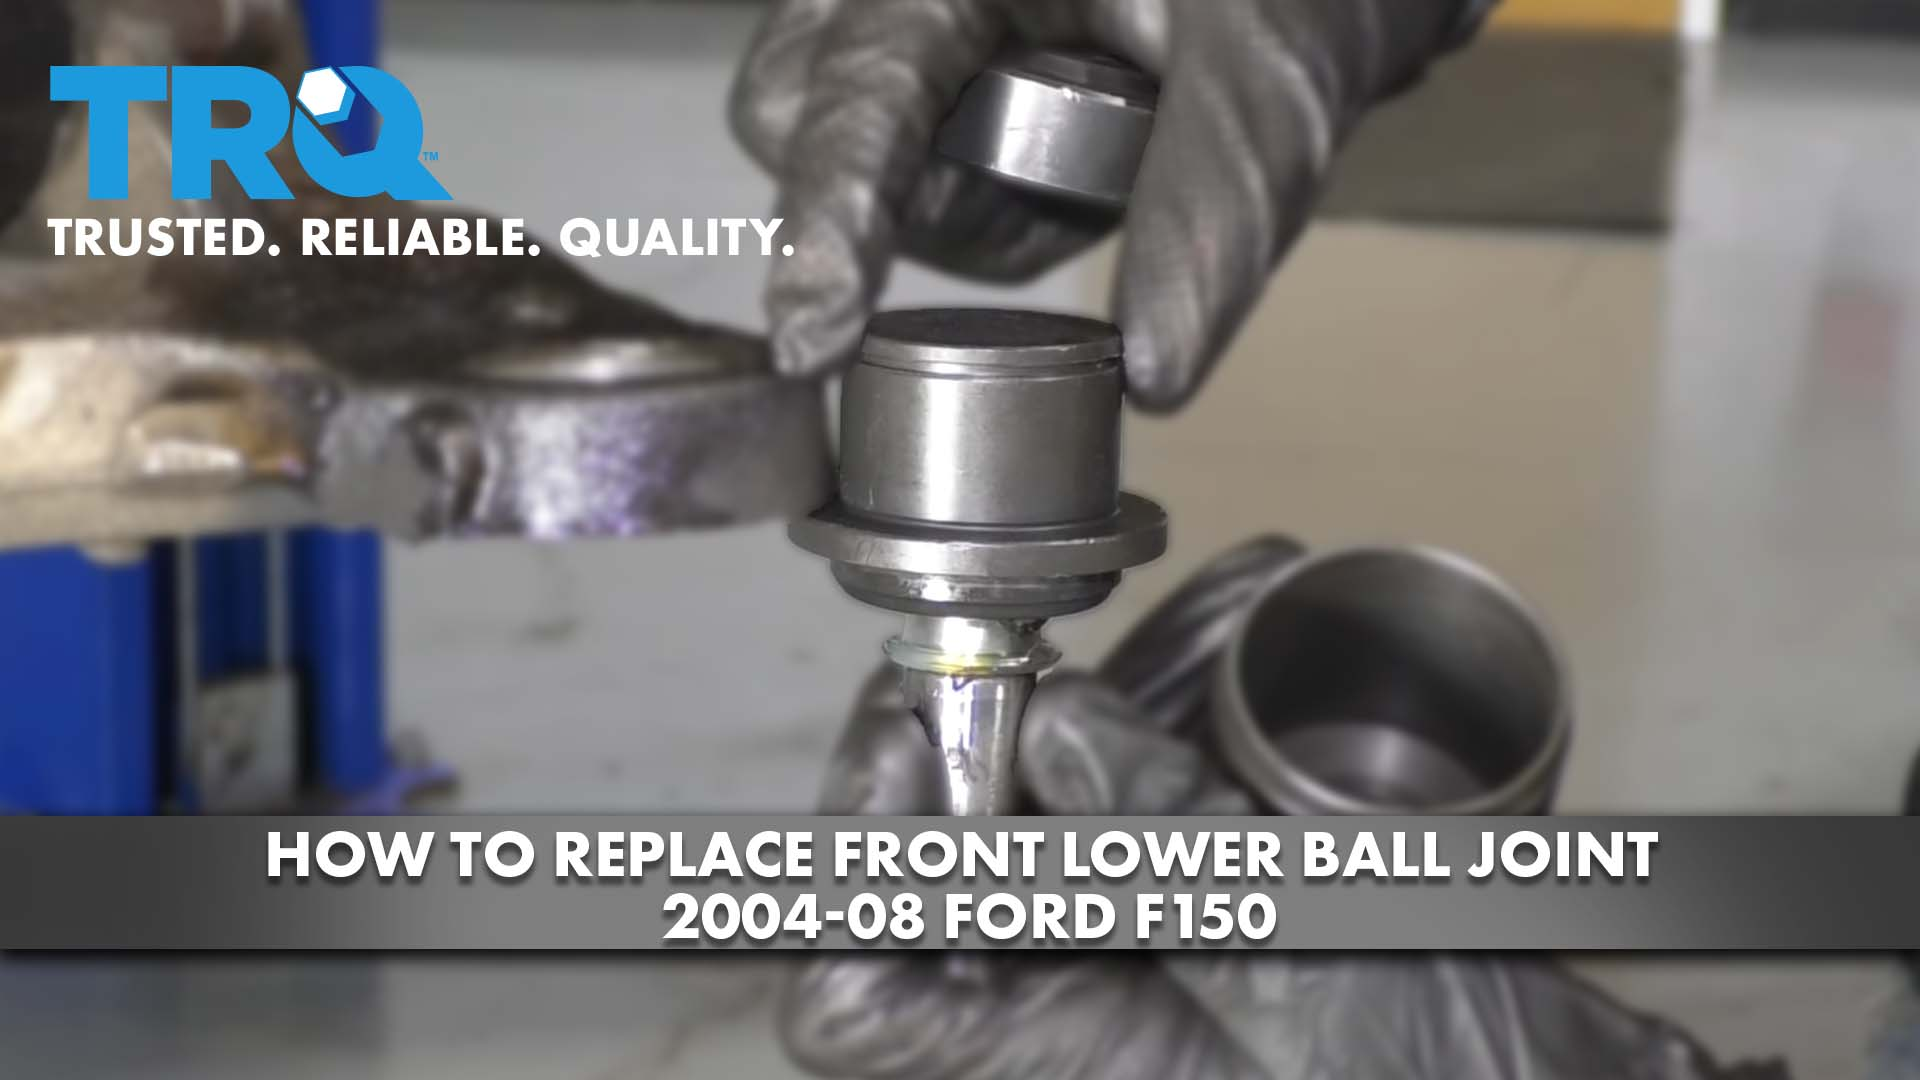 How to Replace Front Lower Ball Joint 2004-08 Ford F150